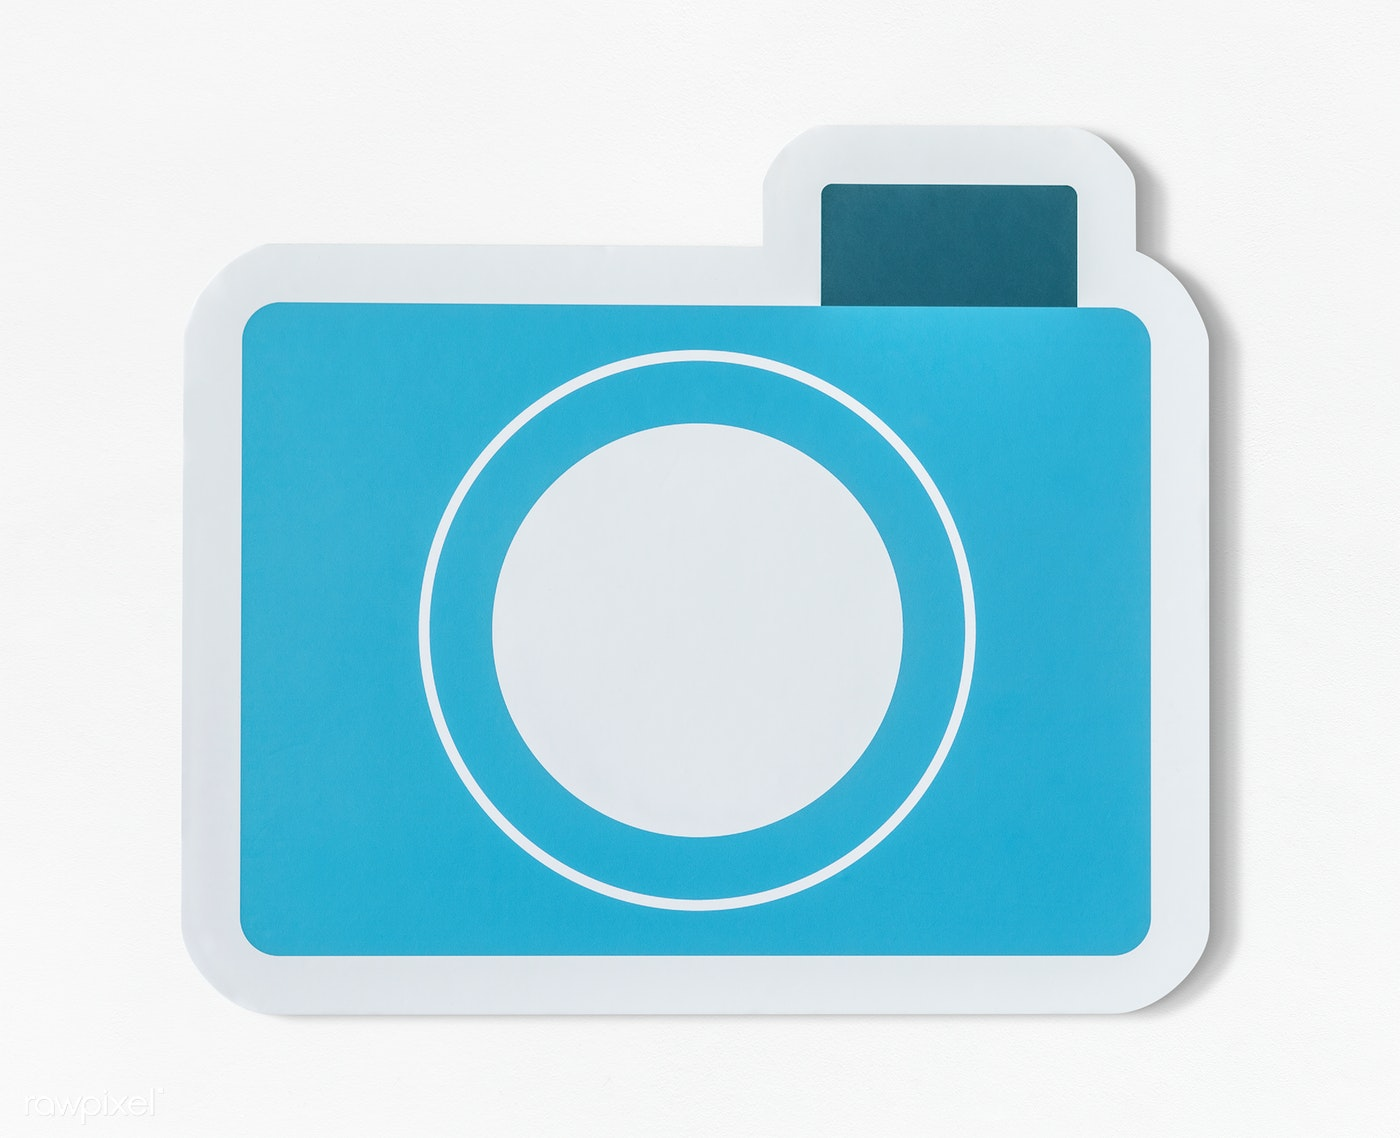 icon of blue paper camera royalty free stock psd mockup 402529